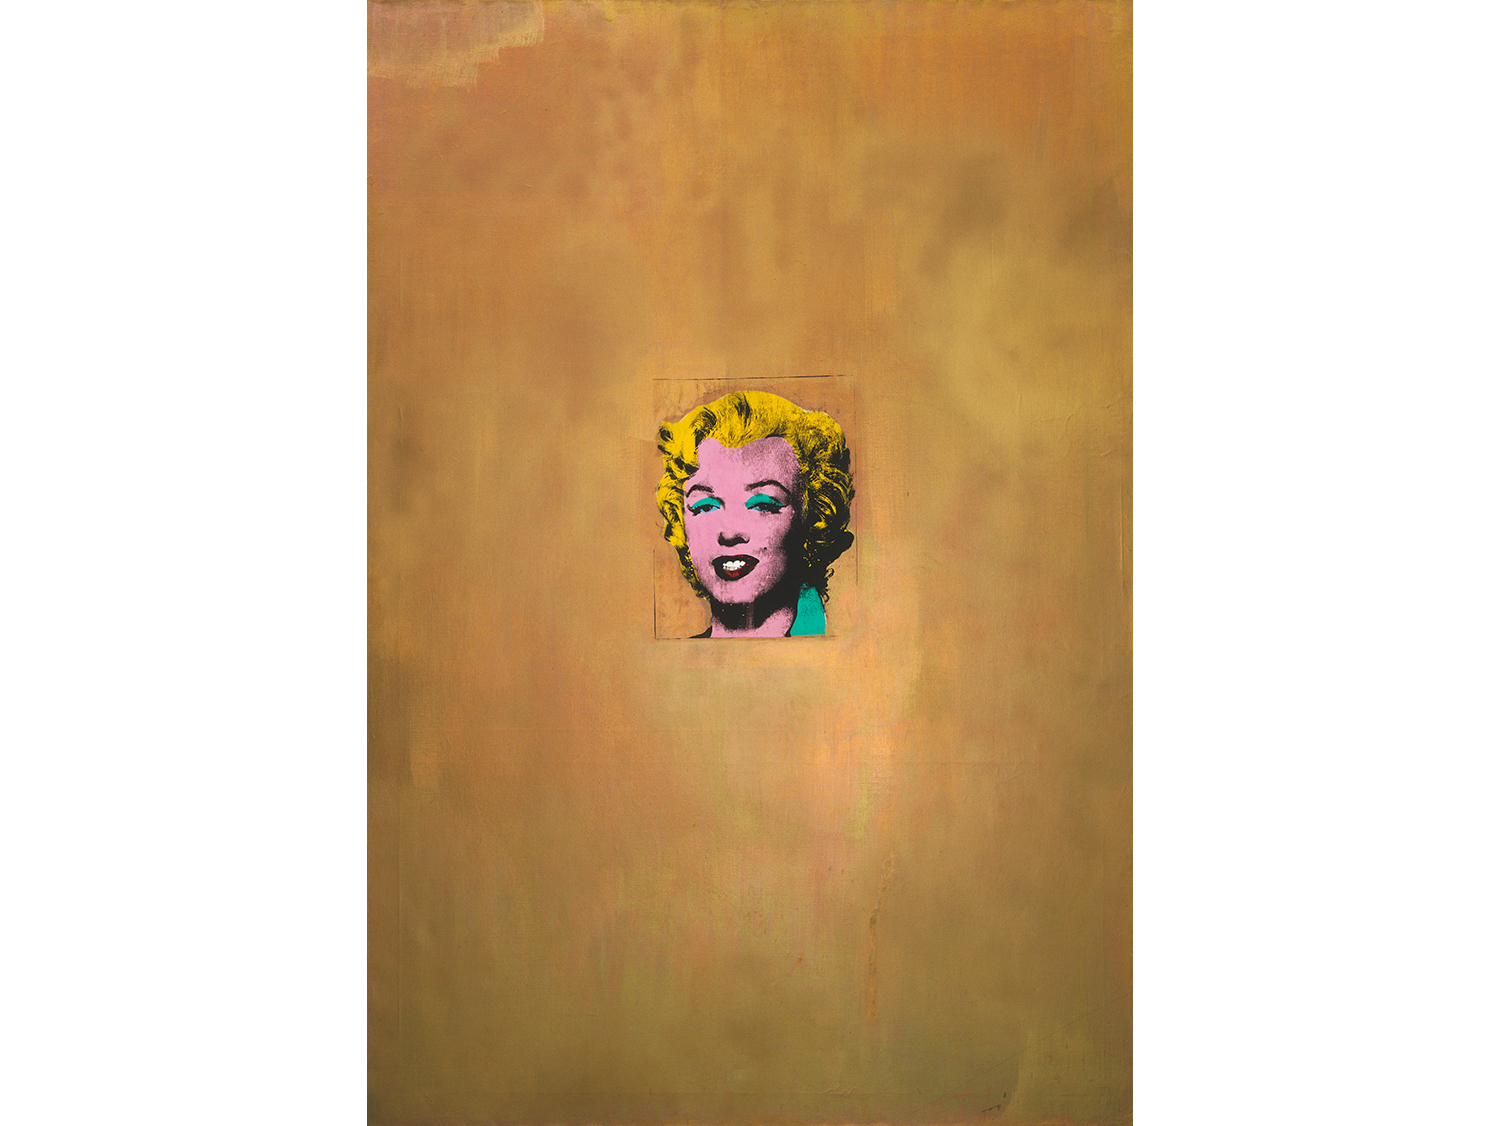 Andy Warhol, Gold Marilyn Monroe (1962)